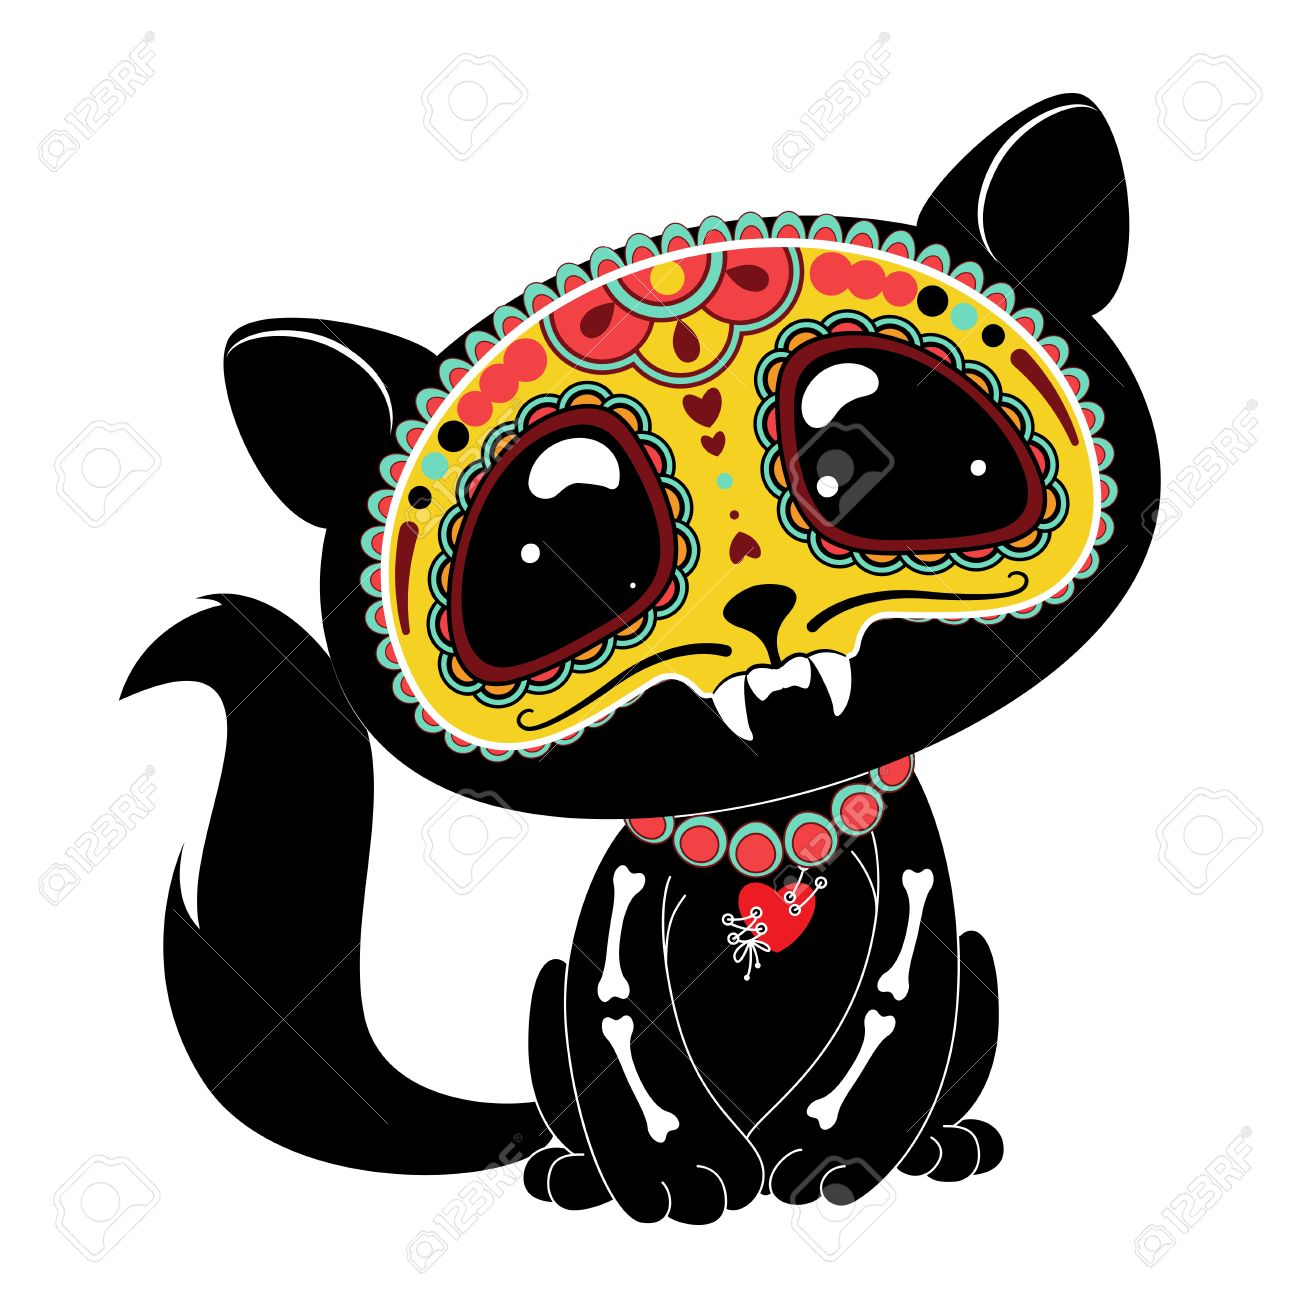 hight resolution of day of the dead dia de los muertos style kitty